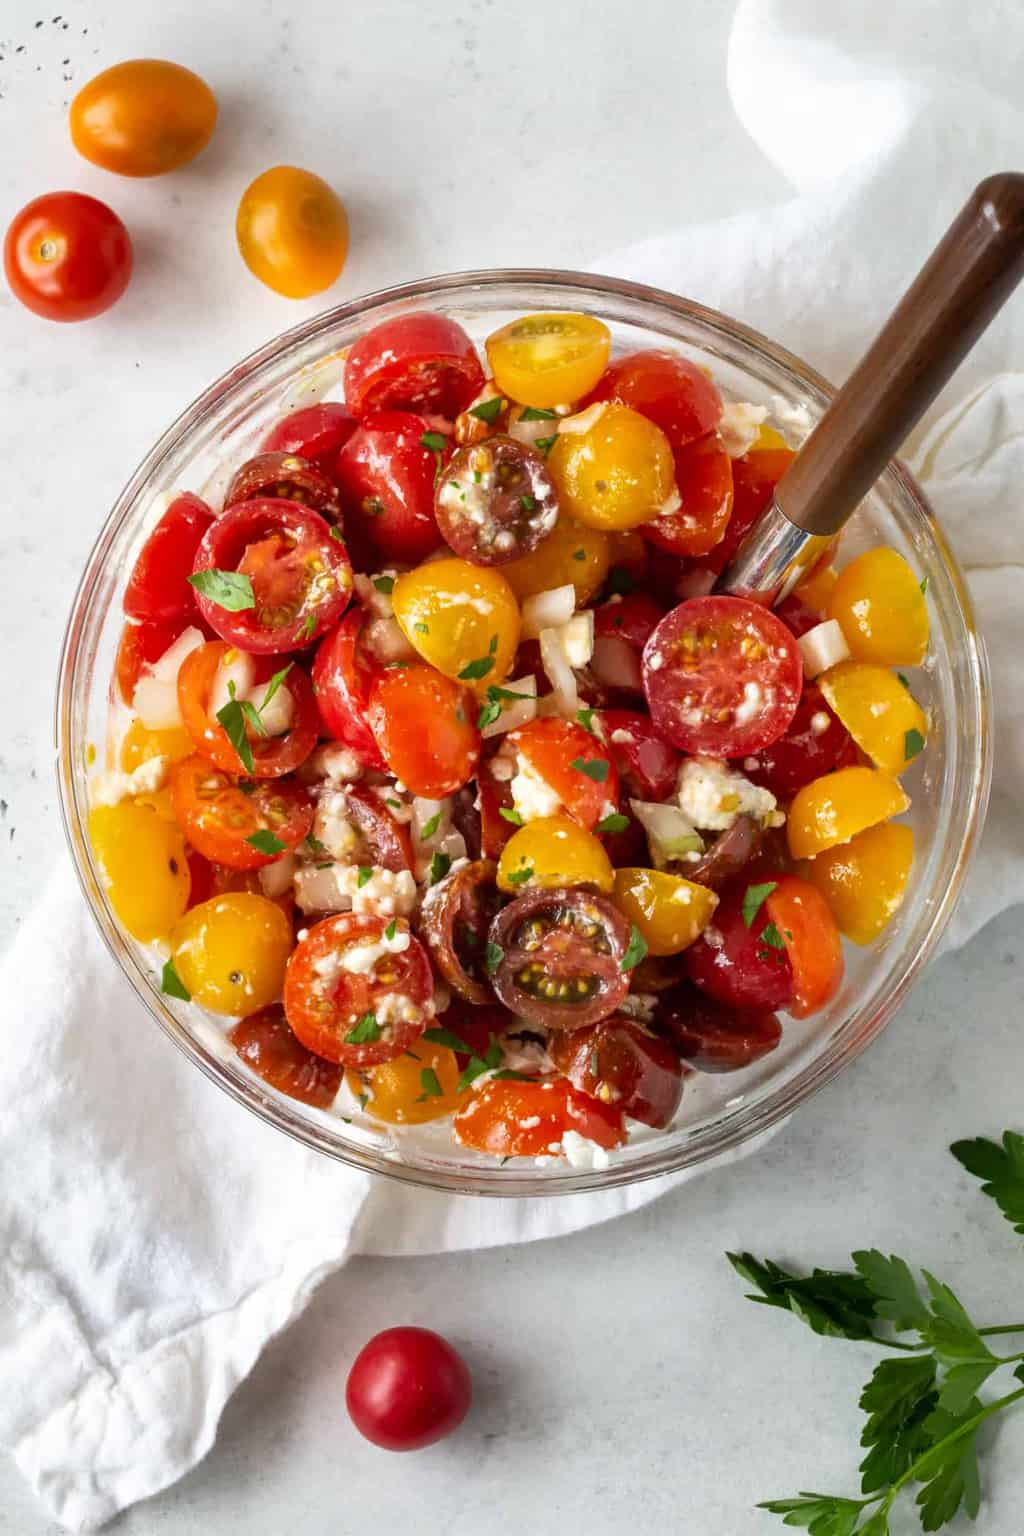 Large glass bowl filled with Tomato Feta Salad with Sweet Onion. Garnished with chopped parsley.